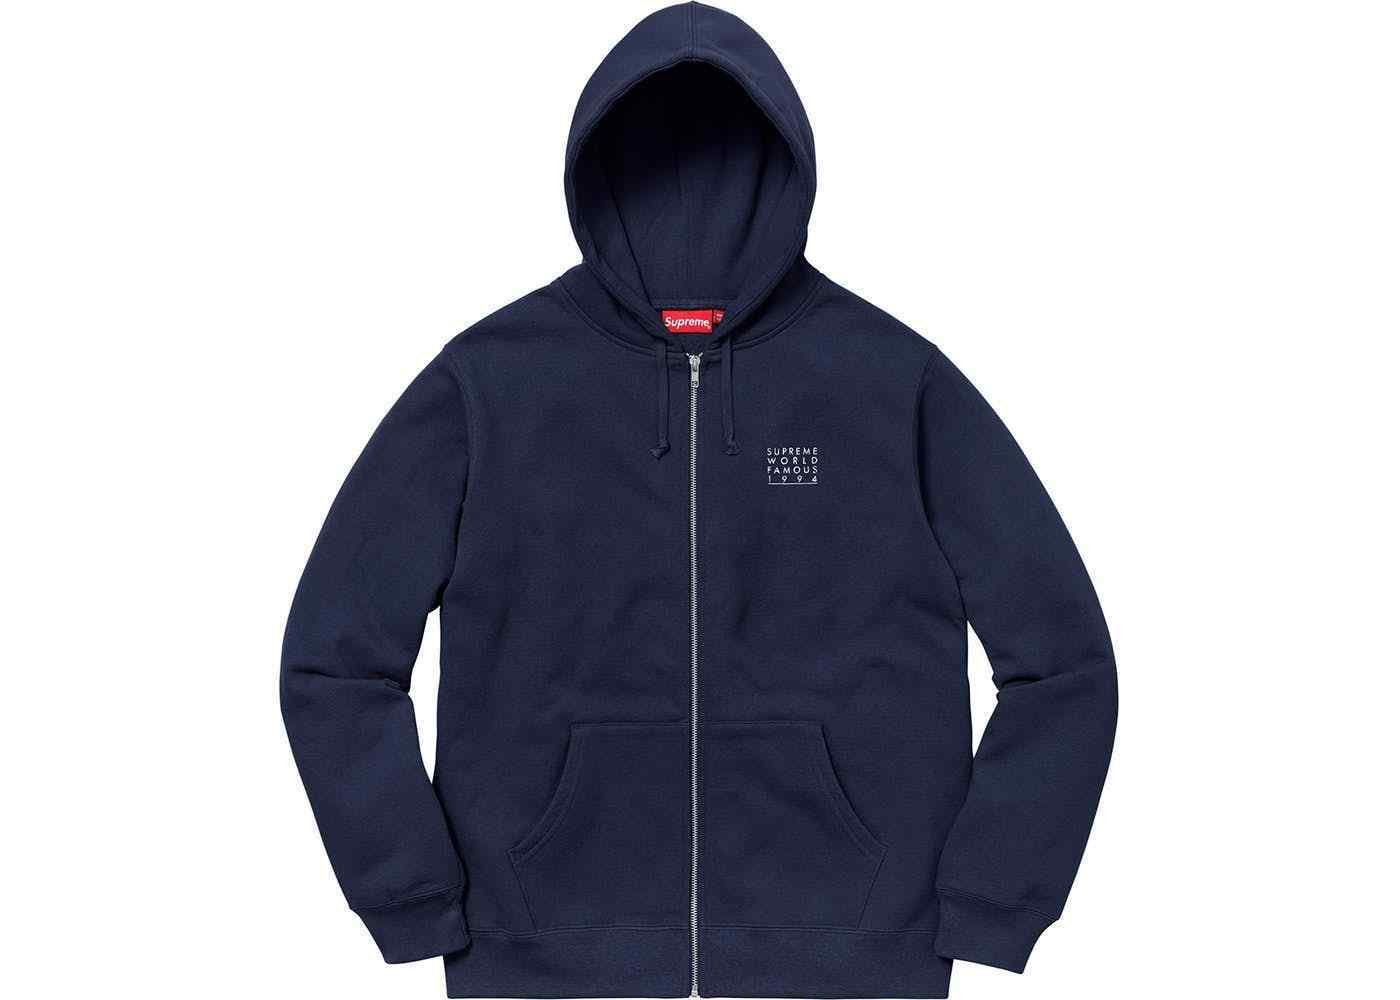 NEW Supreme World Famous Authentic Zip Up Hooded Sweatshirt Navy SS18 Größe M